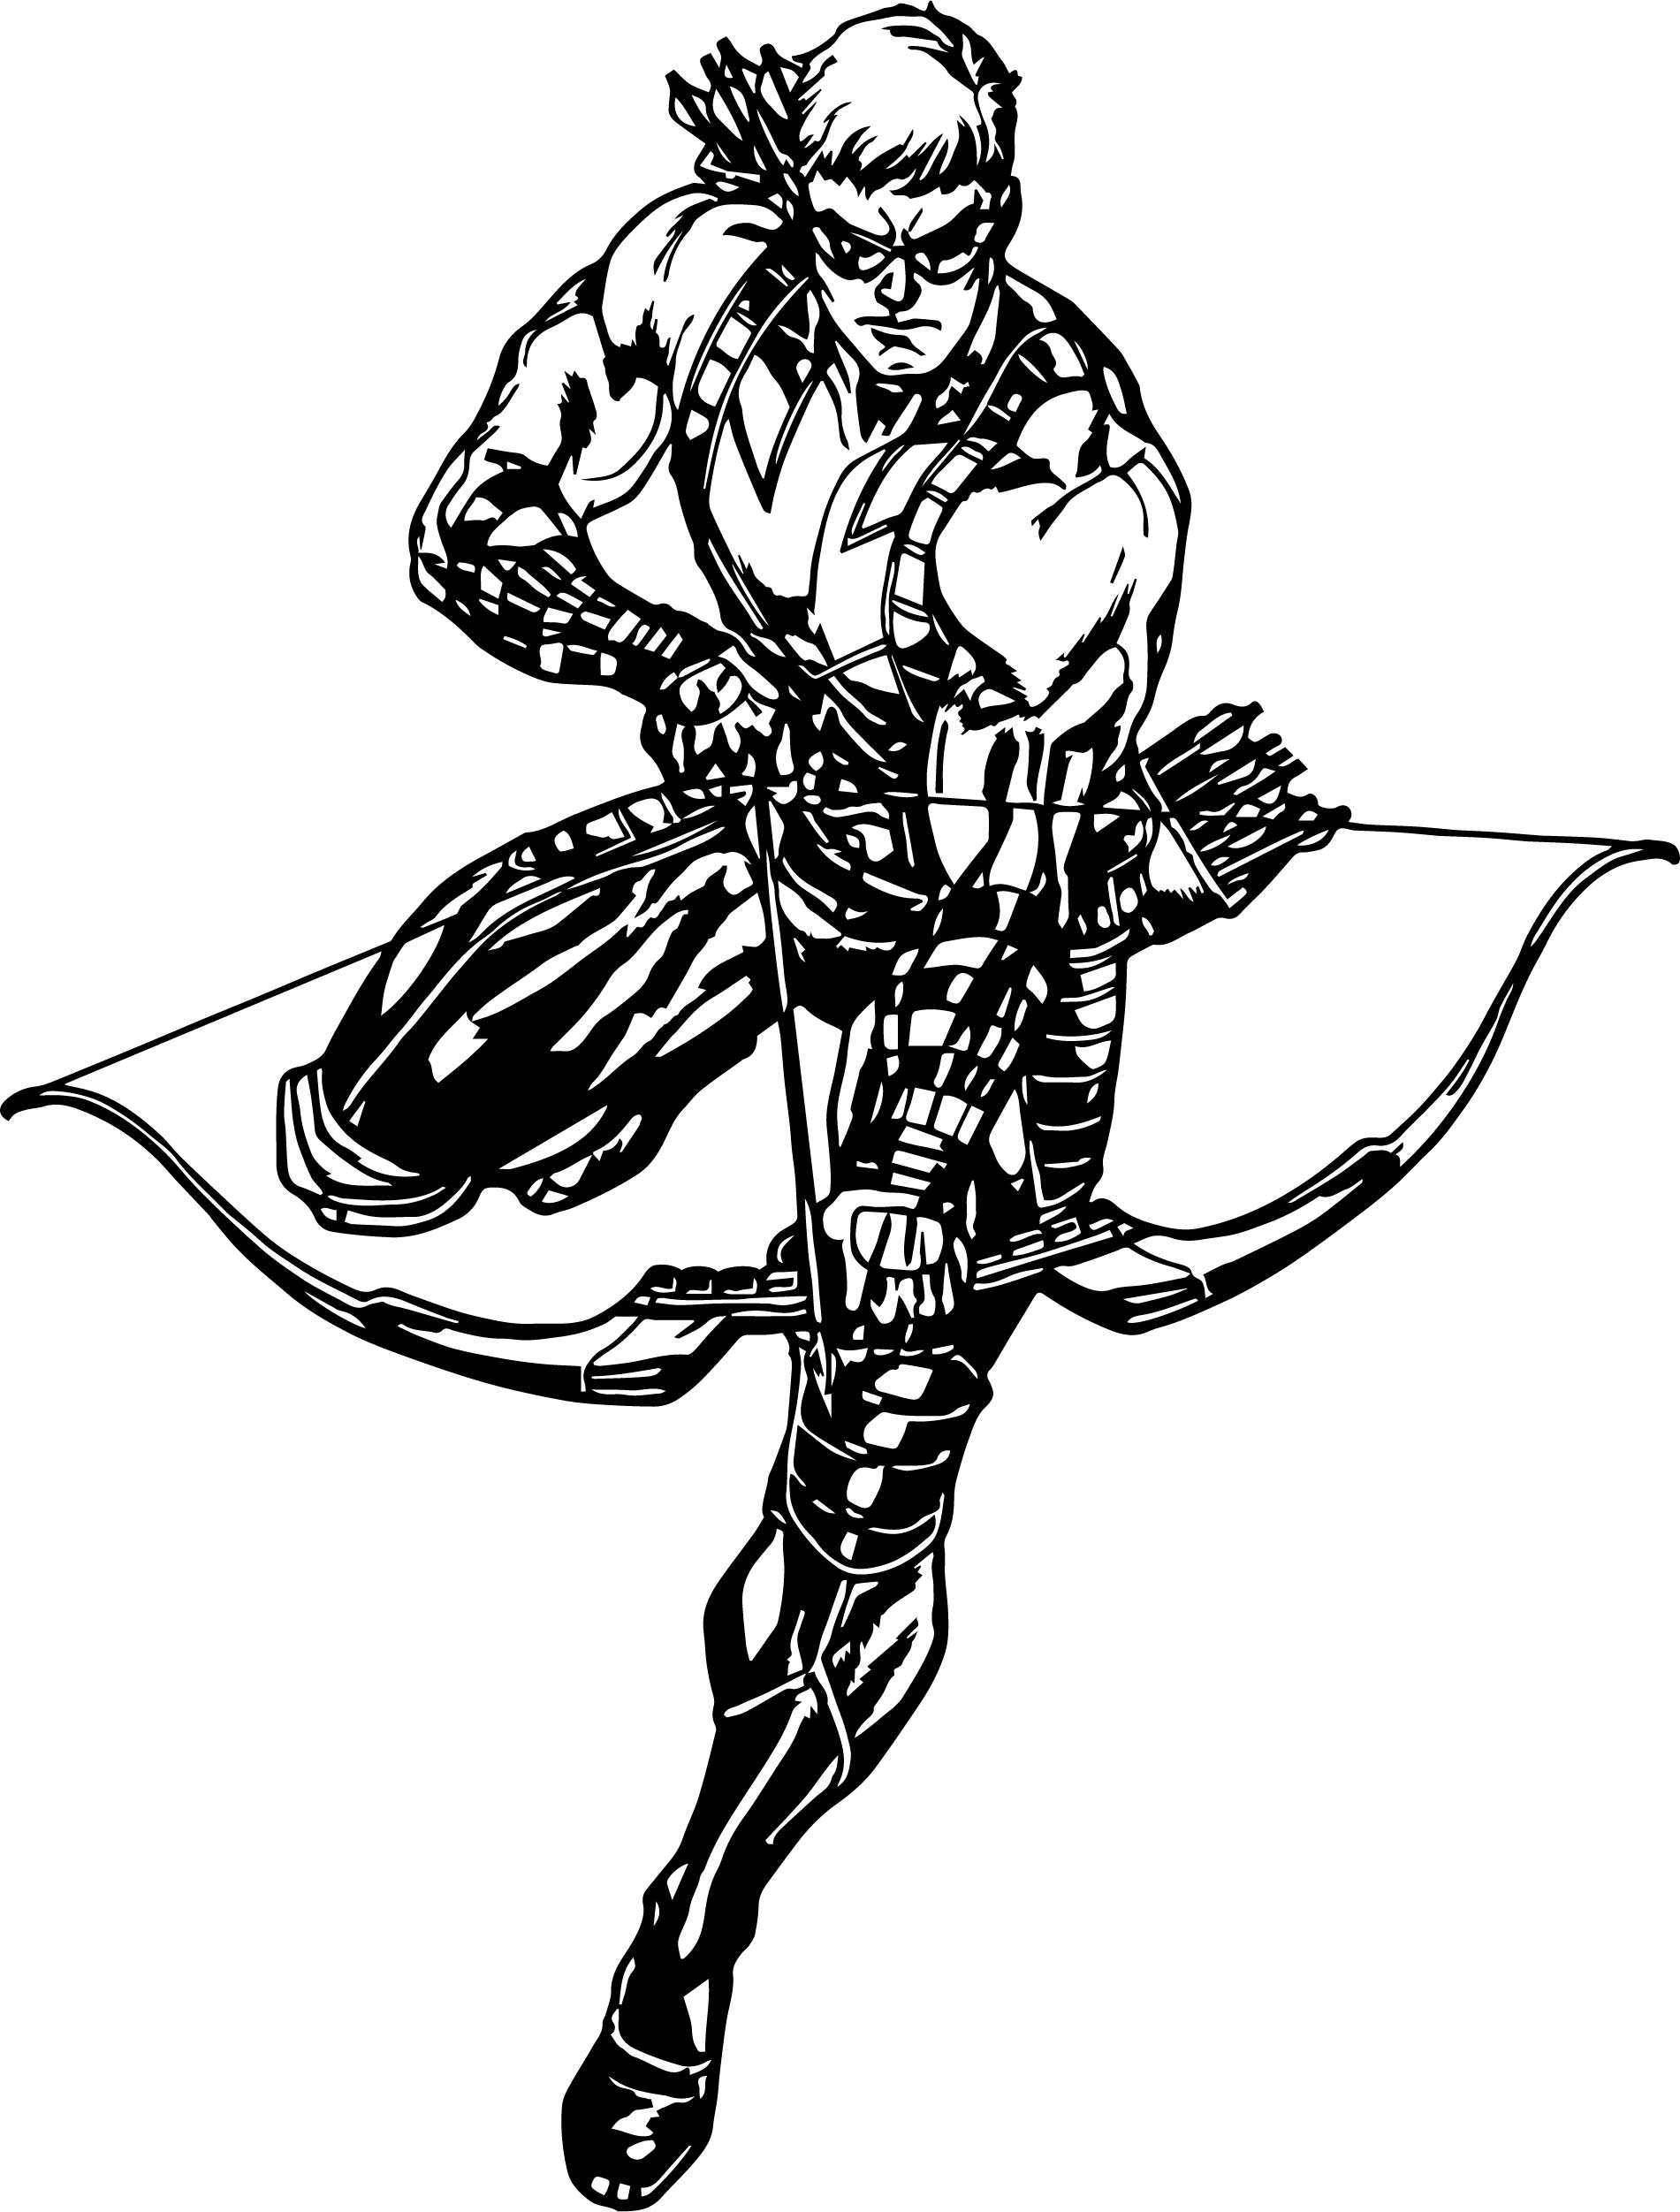 Hawkeye Coloring Pages Bltidm